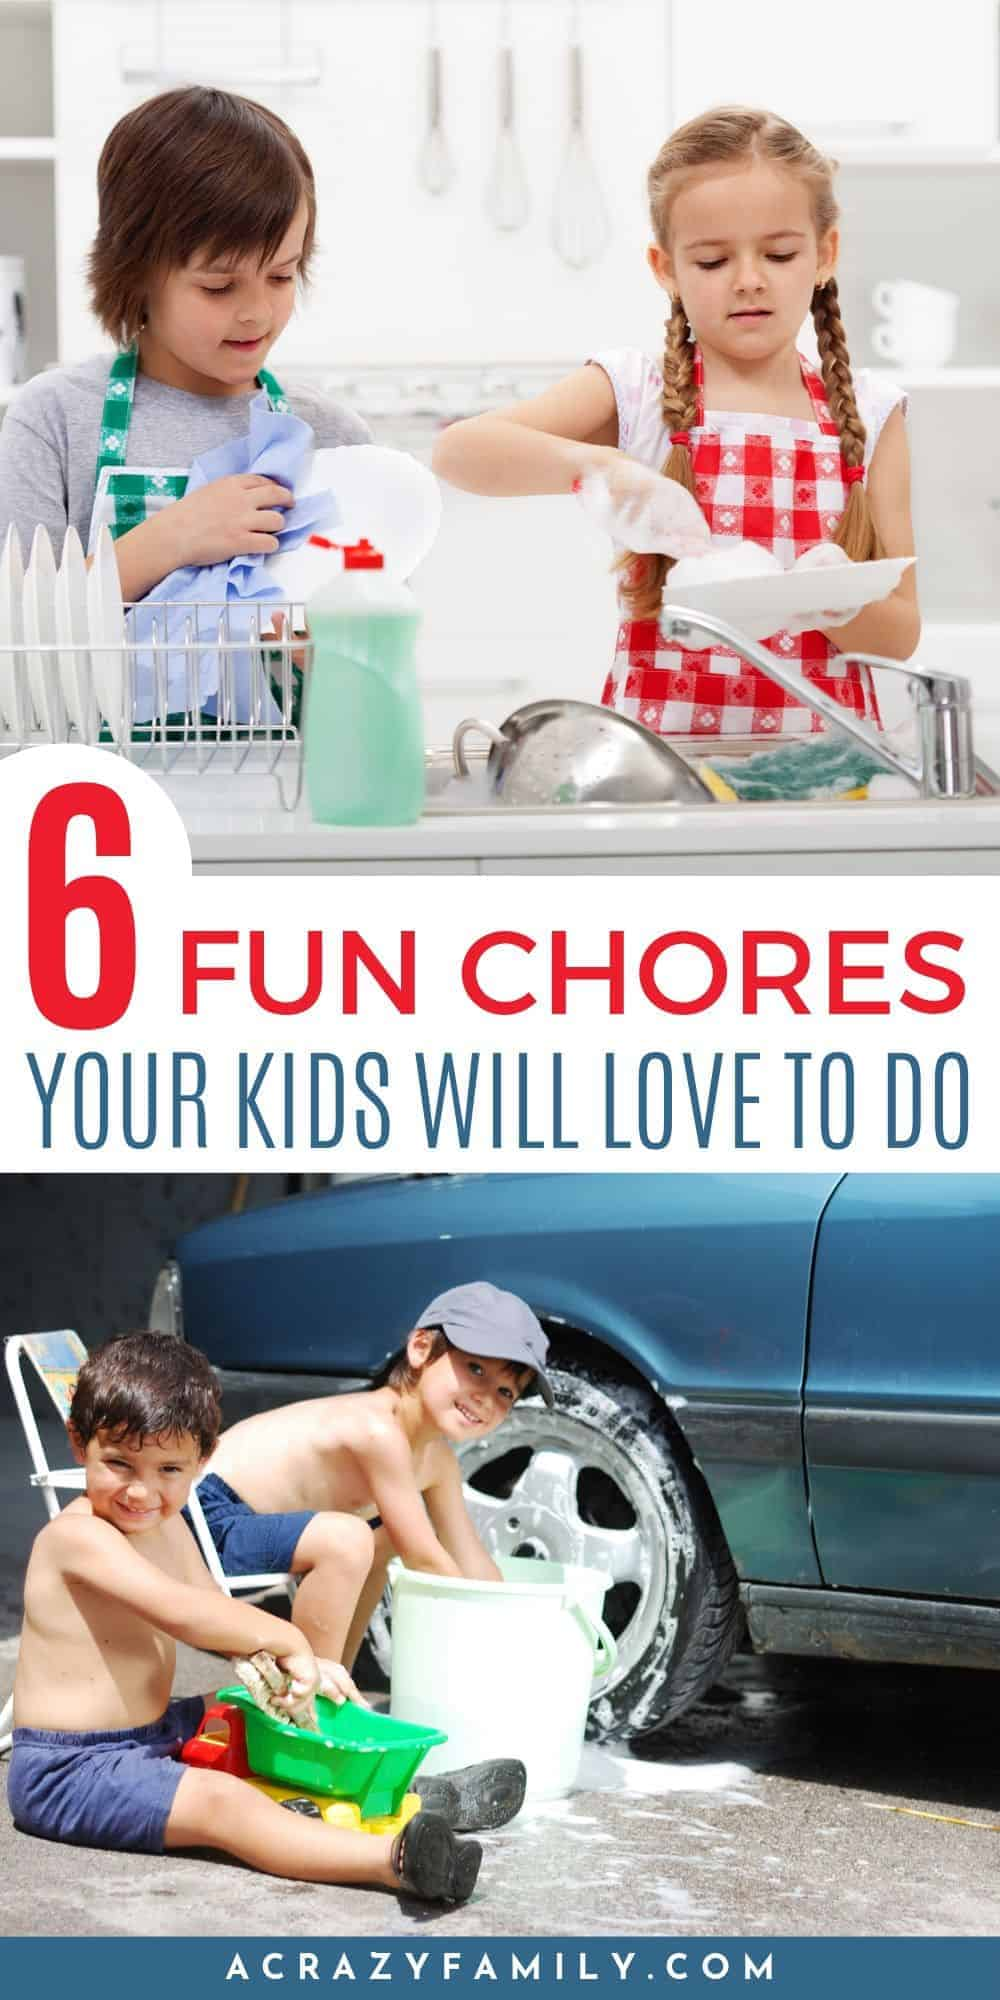 6 Fun Chores Your Kids Will Love to Do